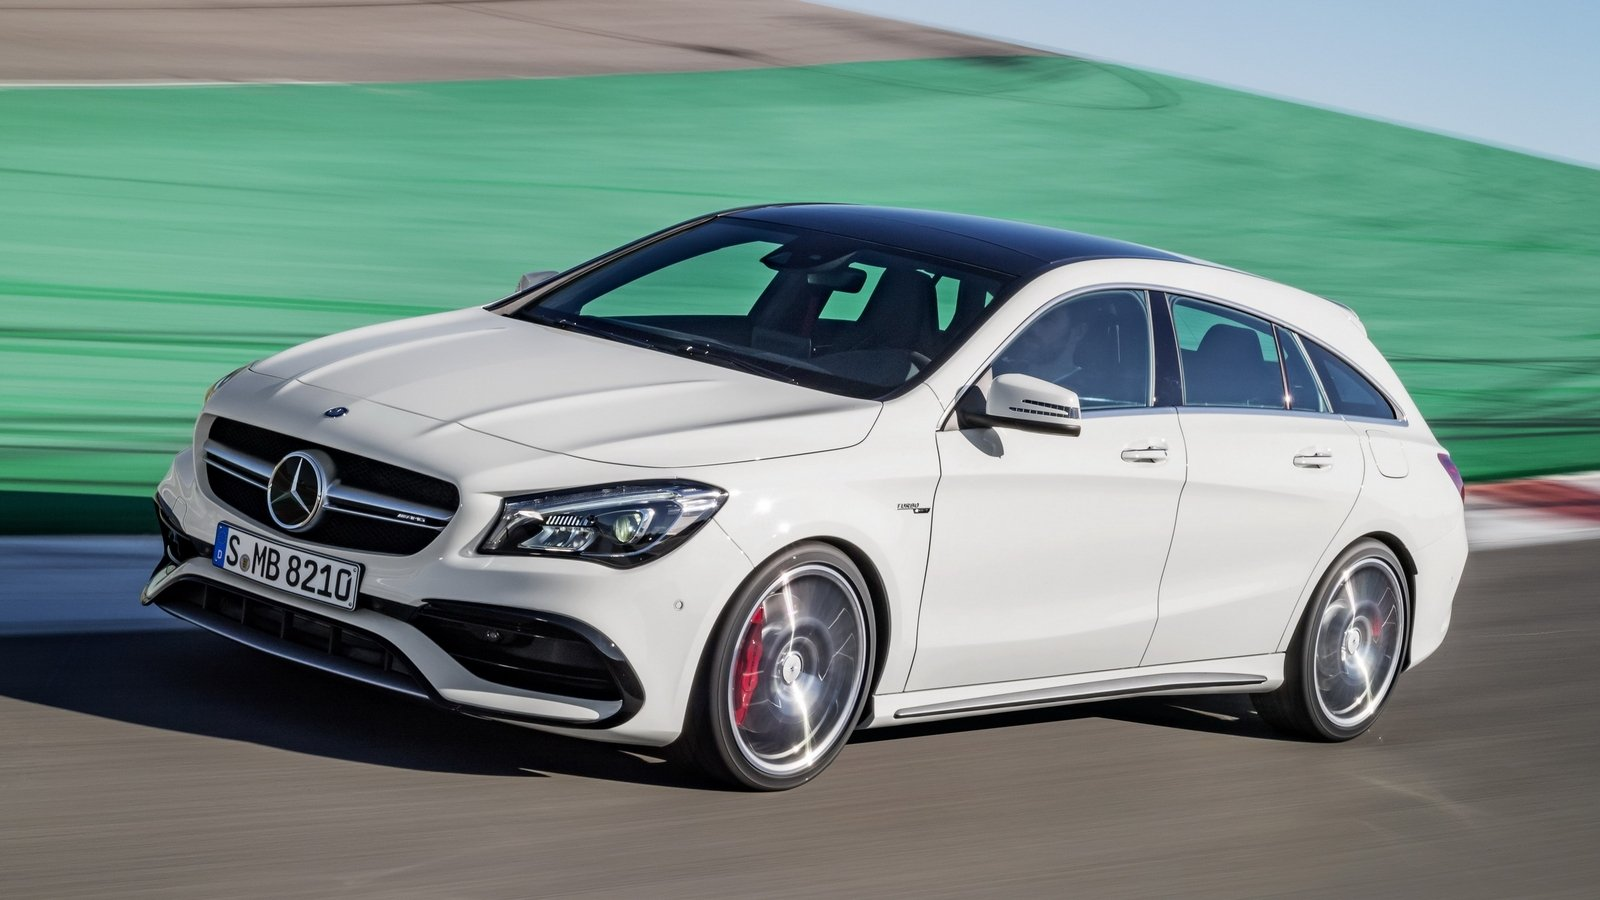 Cla Shooting Brake Review >> 2017 Mercedes-AMG CLA45 Shooting Brake Review - Top Speed